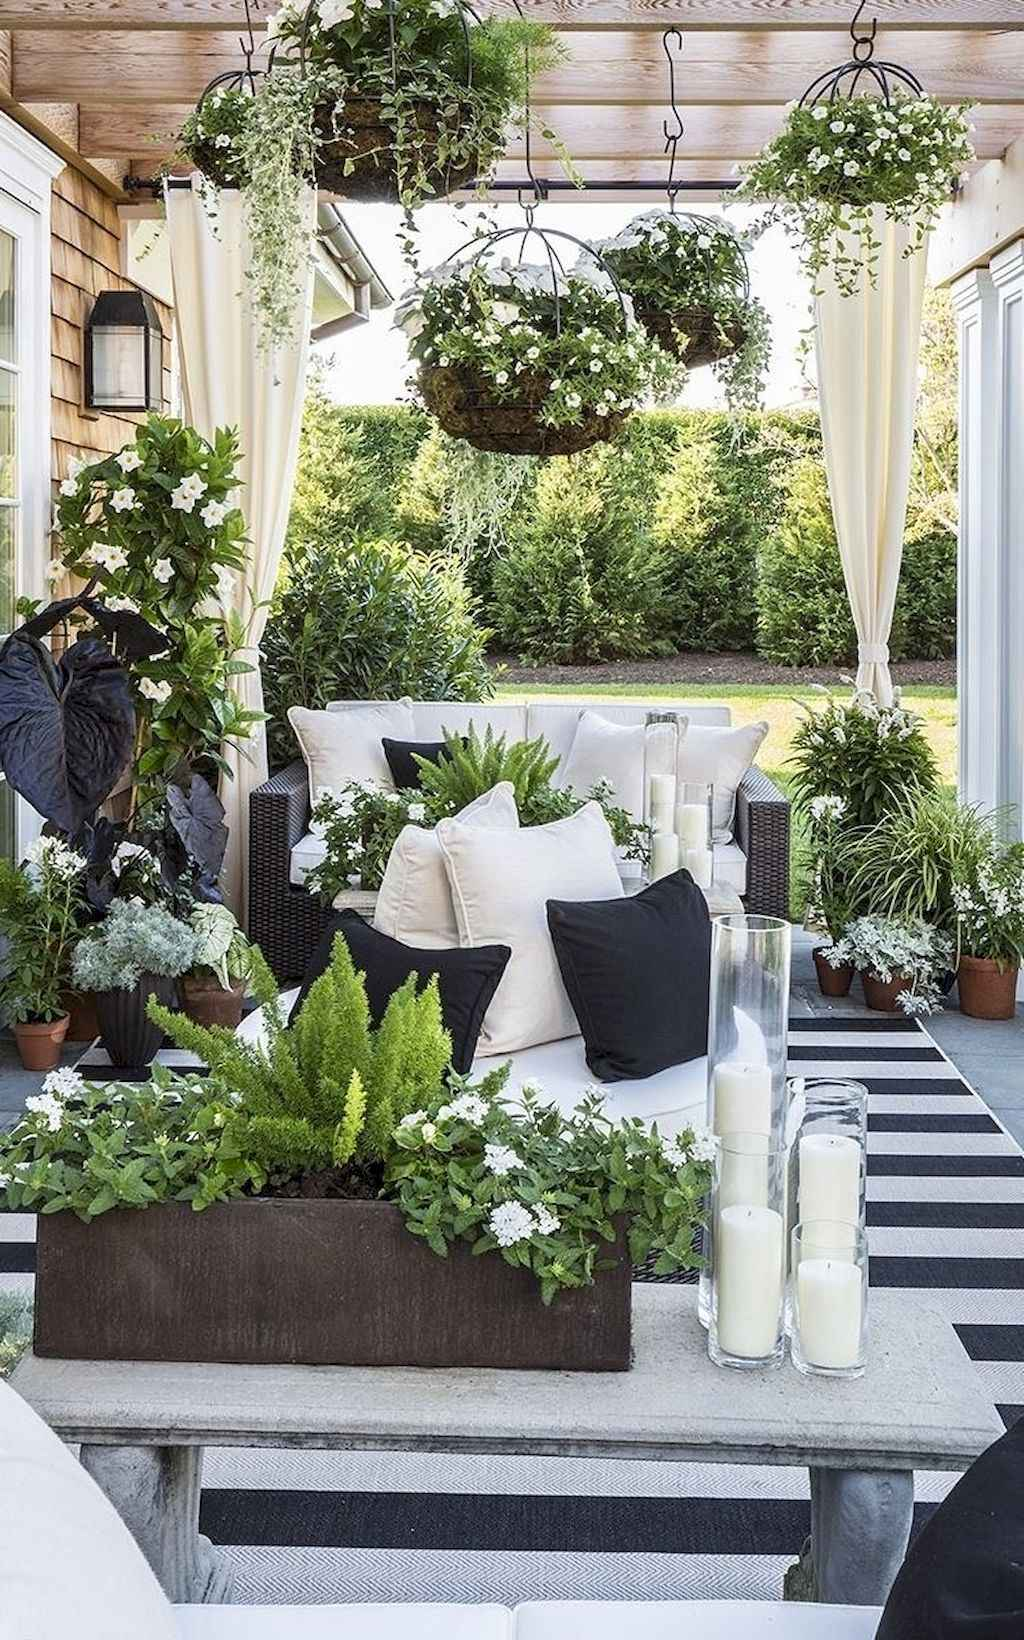 Cleverly diy porch patio decorating ideas (32)